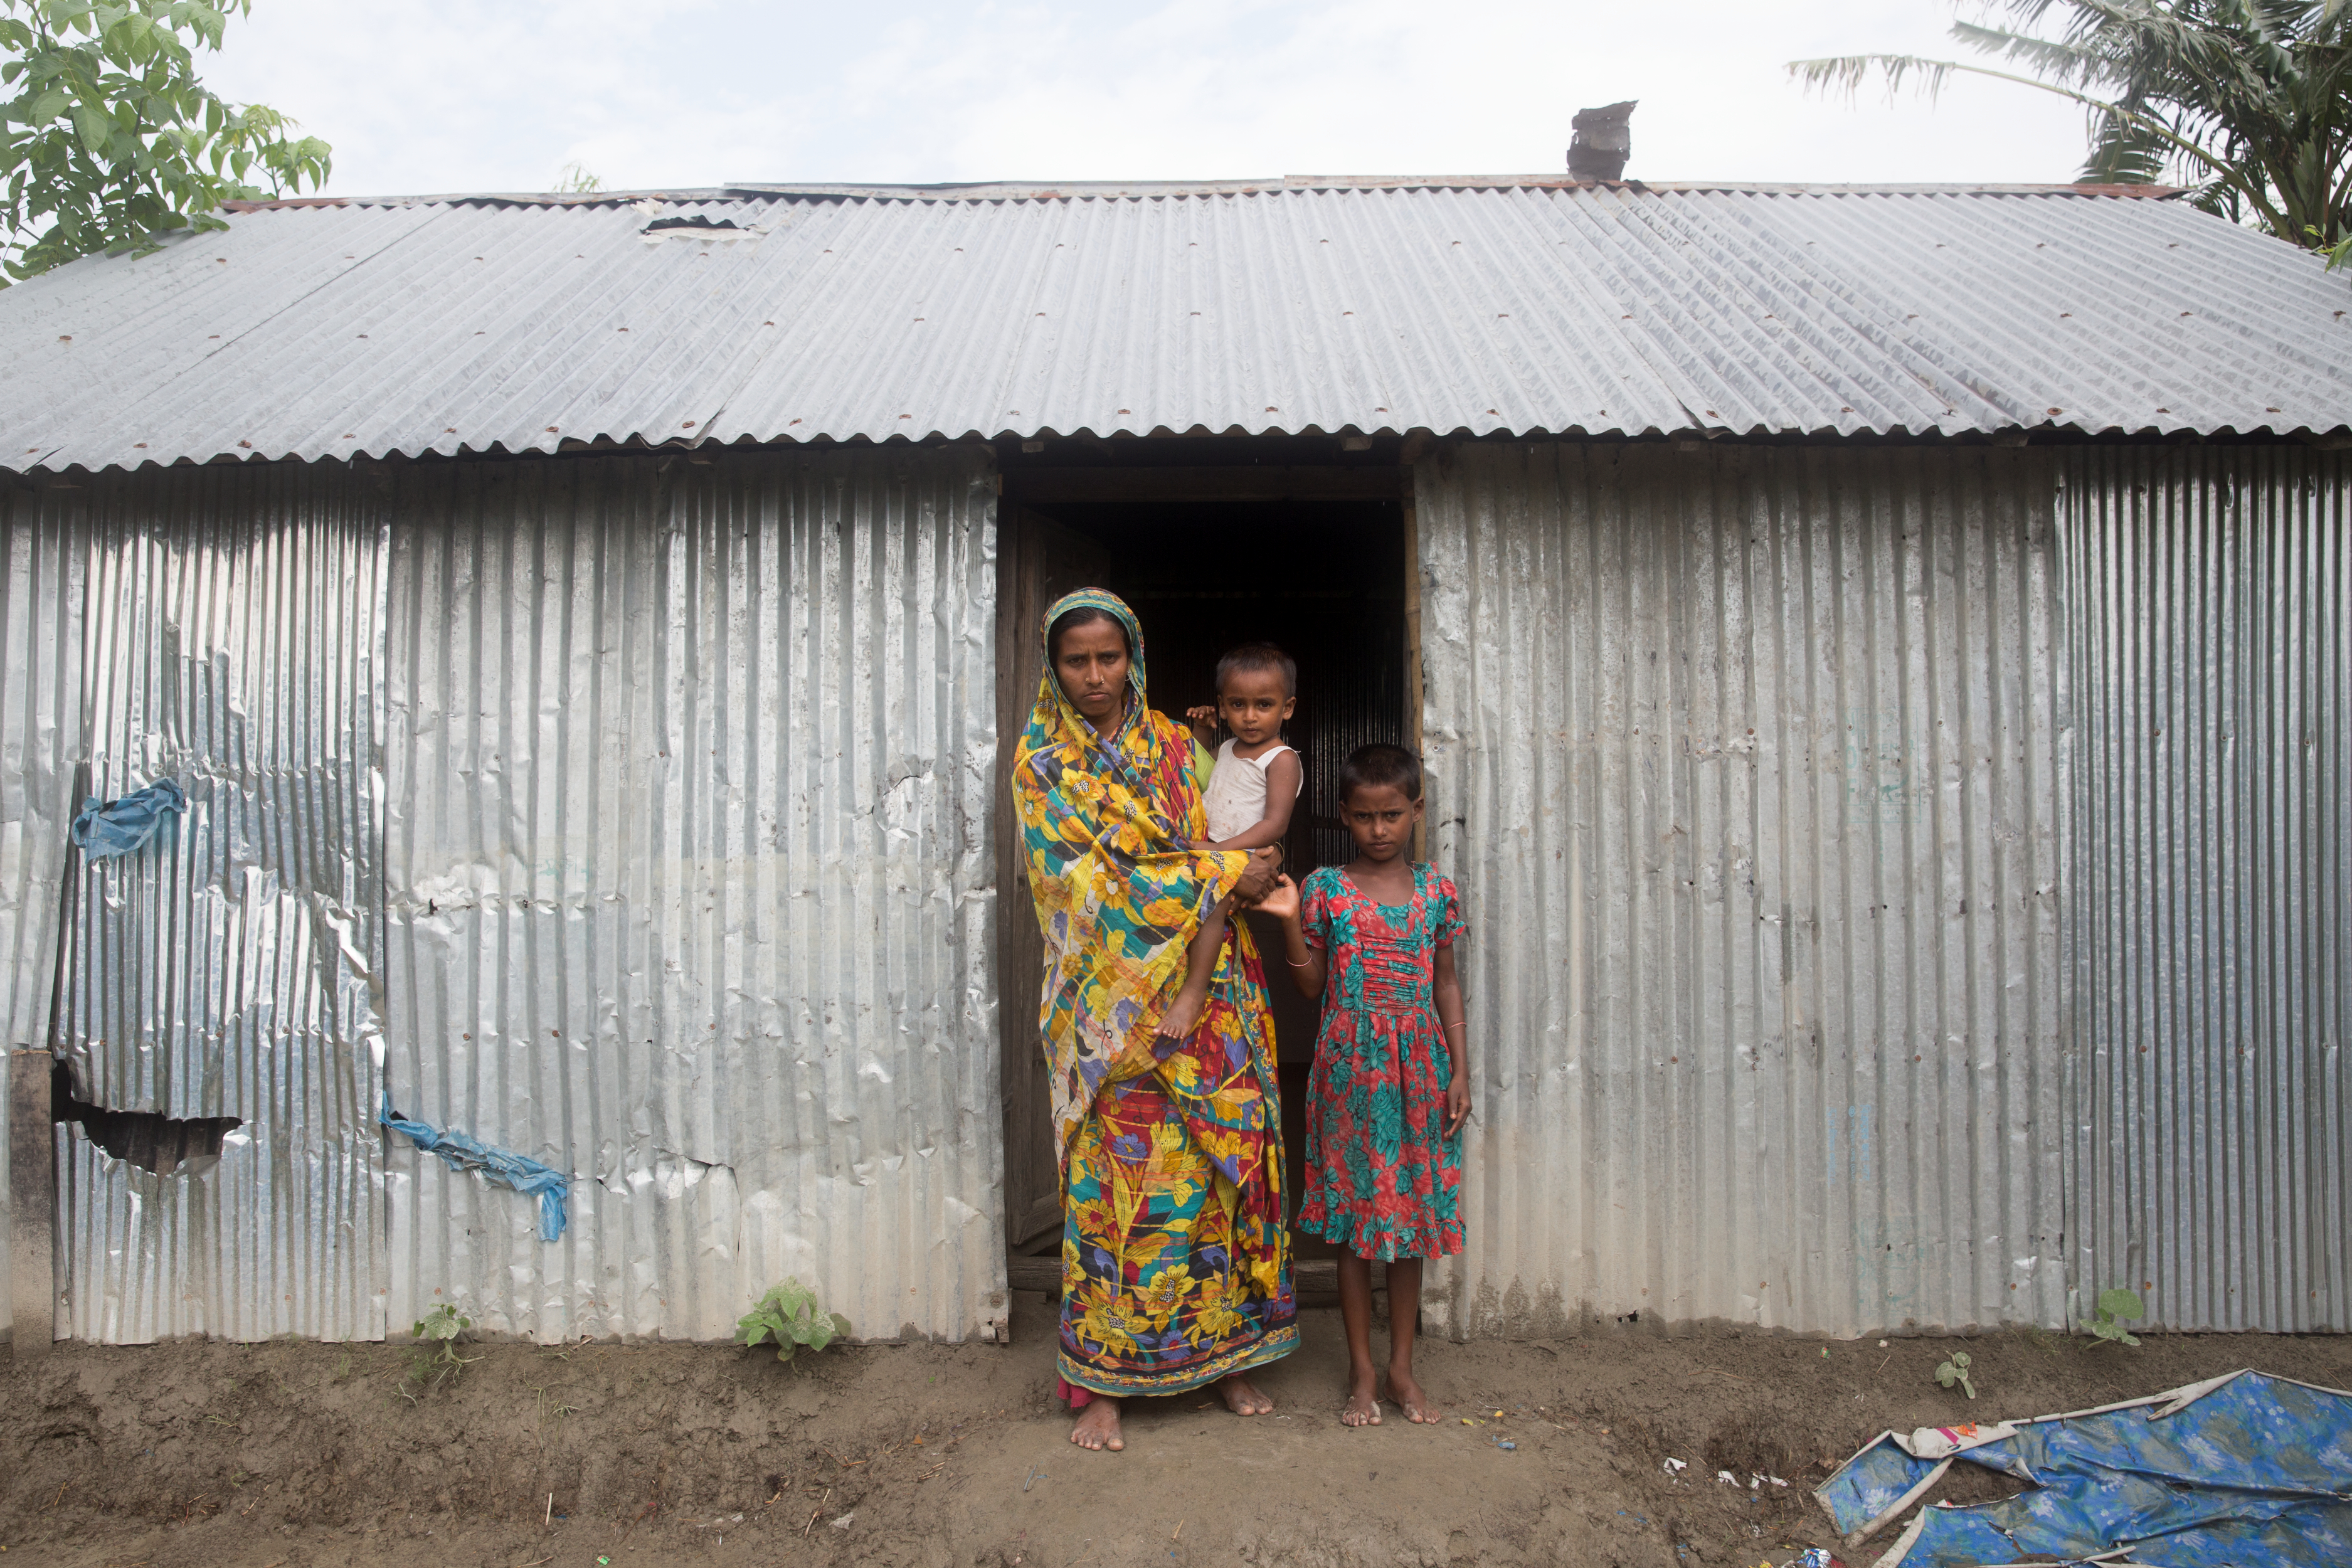 Morsheda stands in the doorway of her home with two of her children